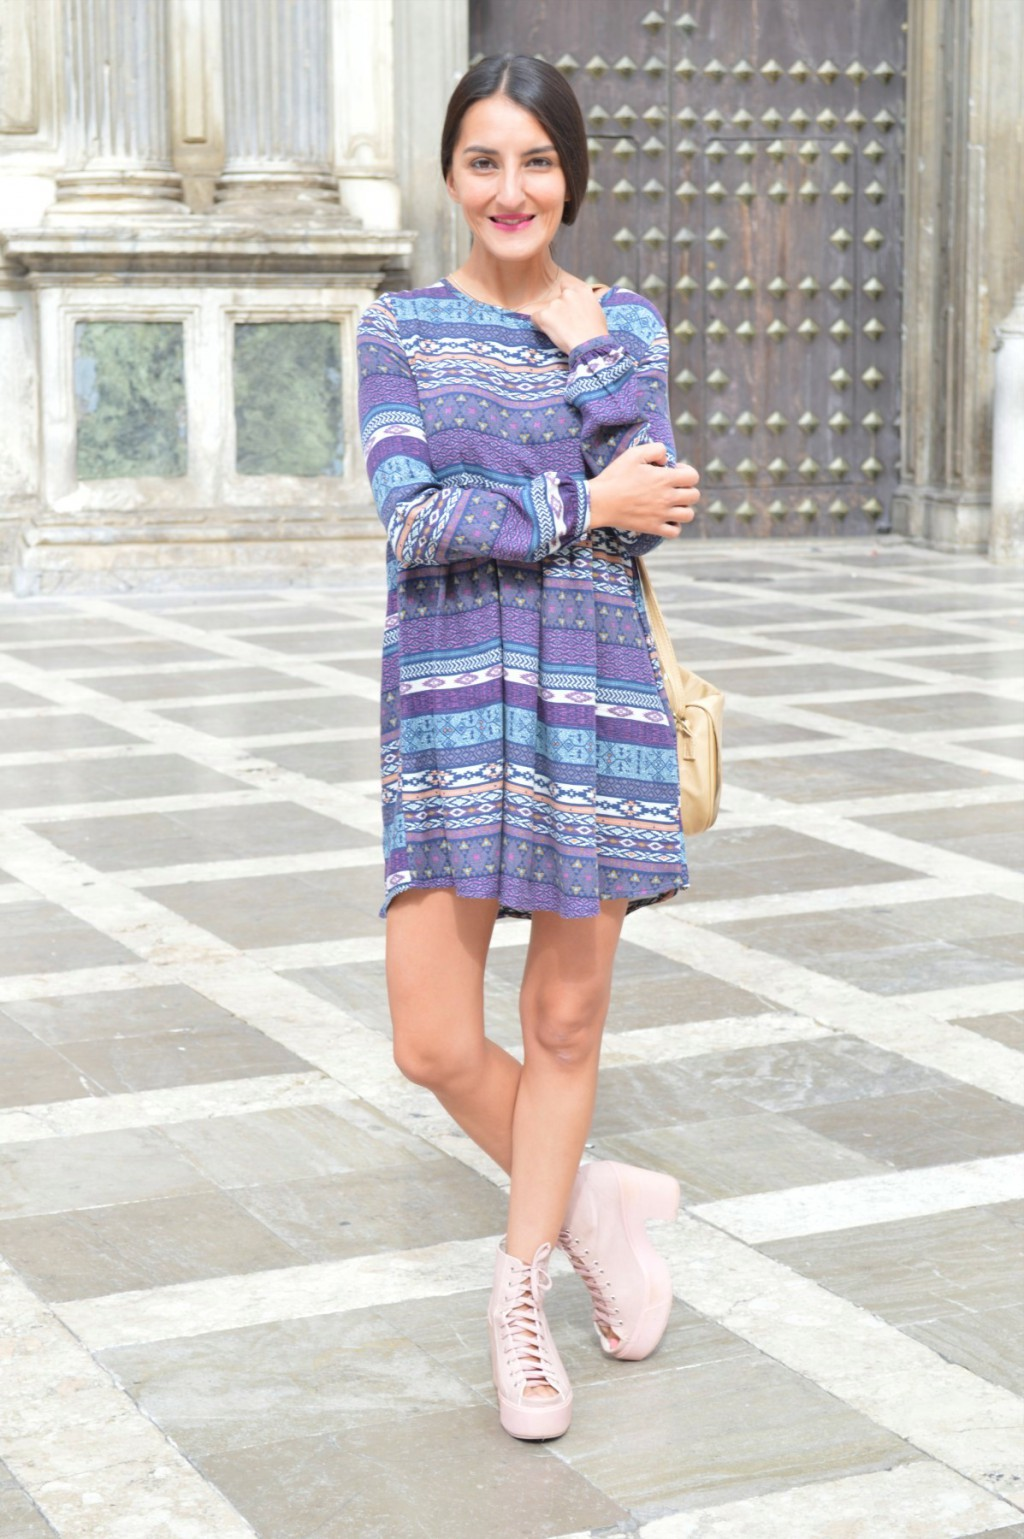 Vestido / dress: Shana (new) Botas / boots: Topshop Bolso / bag: tienda local - local store (old)